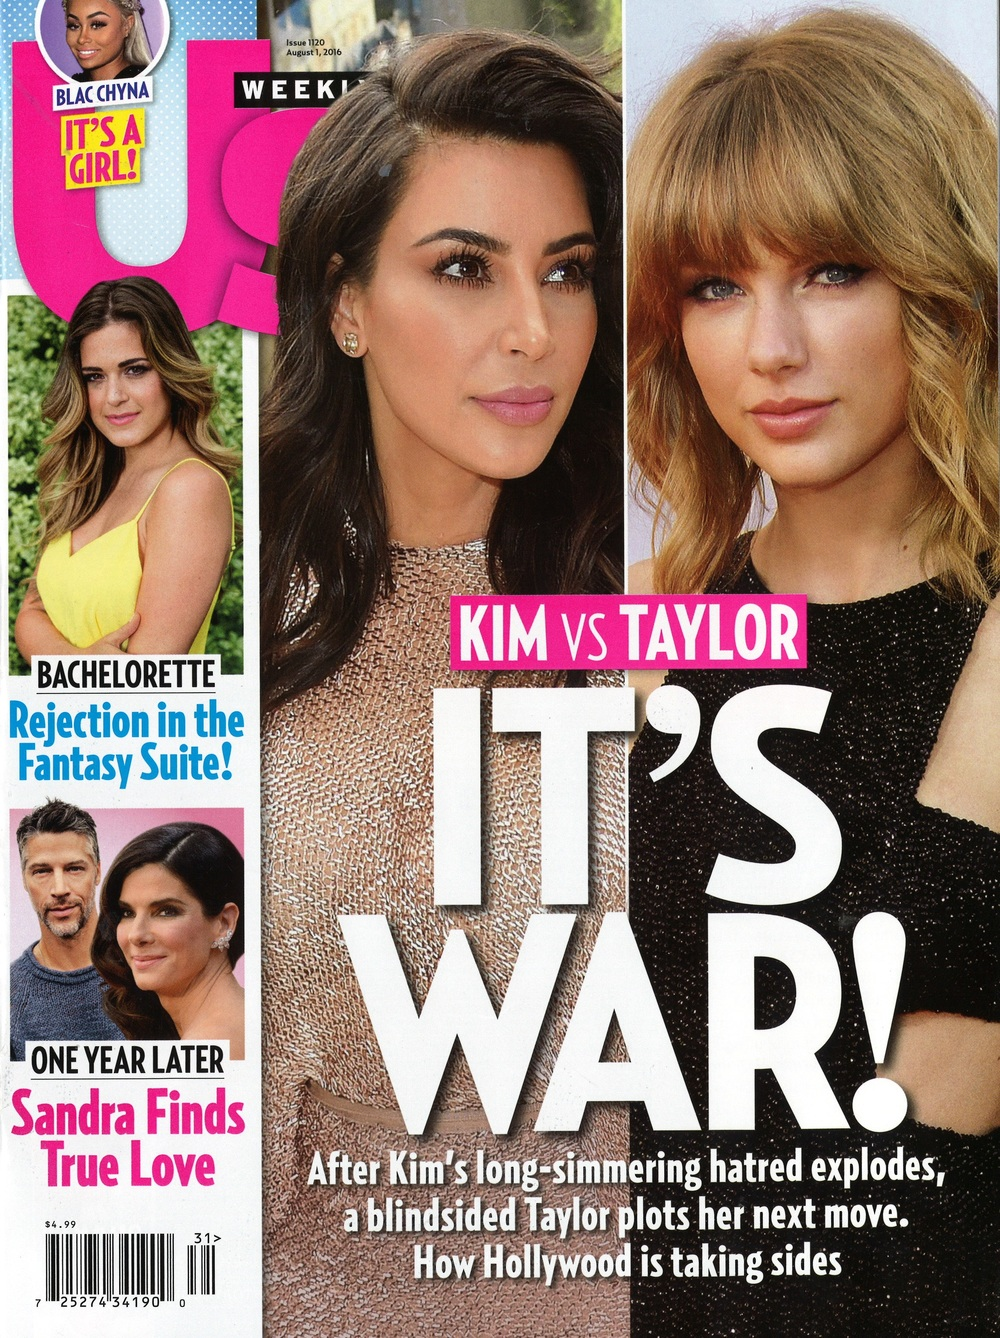 US Weekly - Cover - 07.21.16.jpg